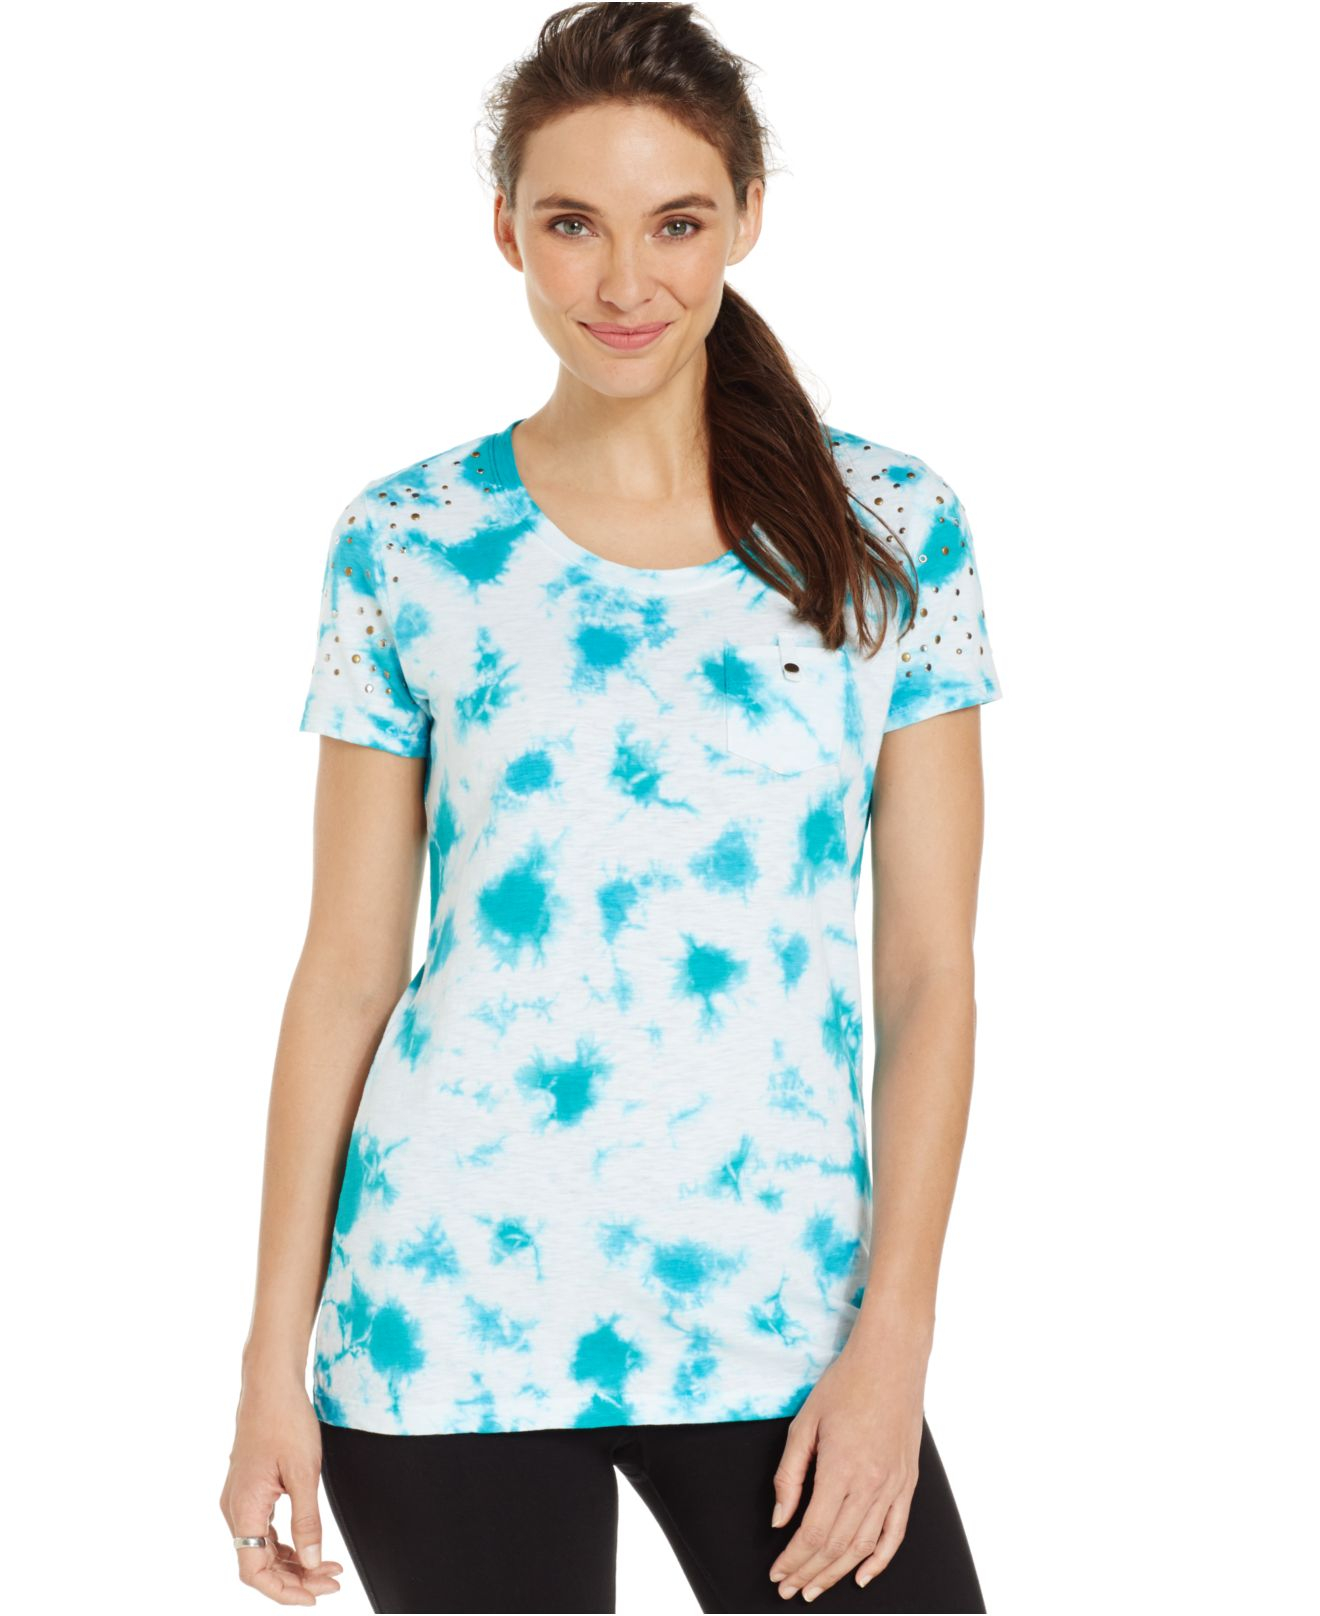 lyst style co sport petite embellished tie dyed tee in blue. Black Bedroom Furniture Sets. Home Design Ideas